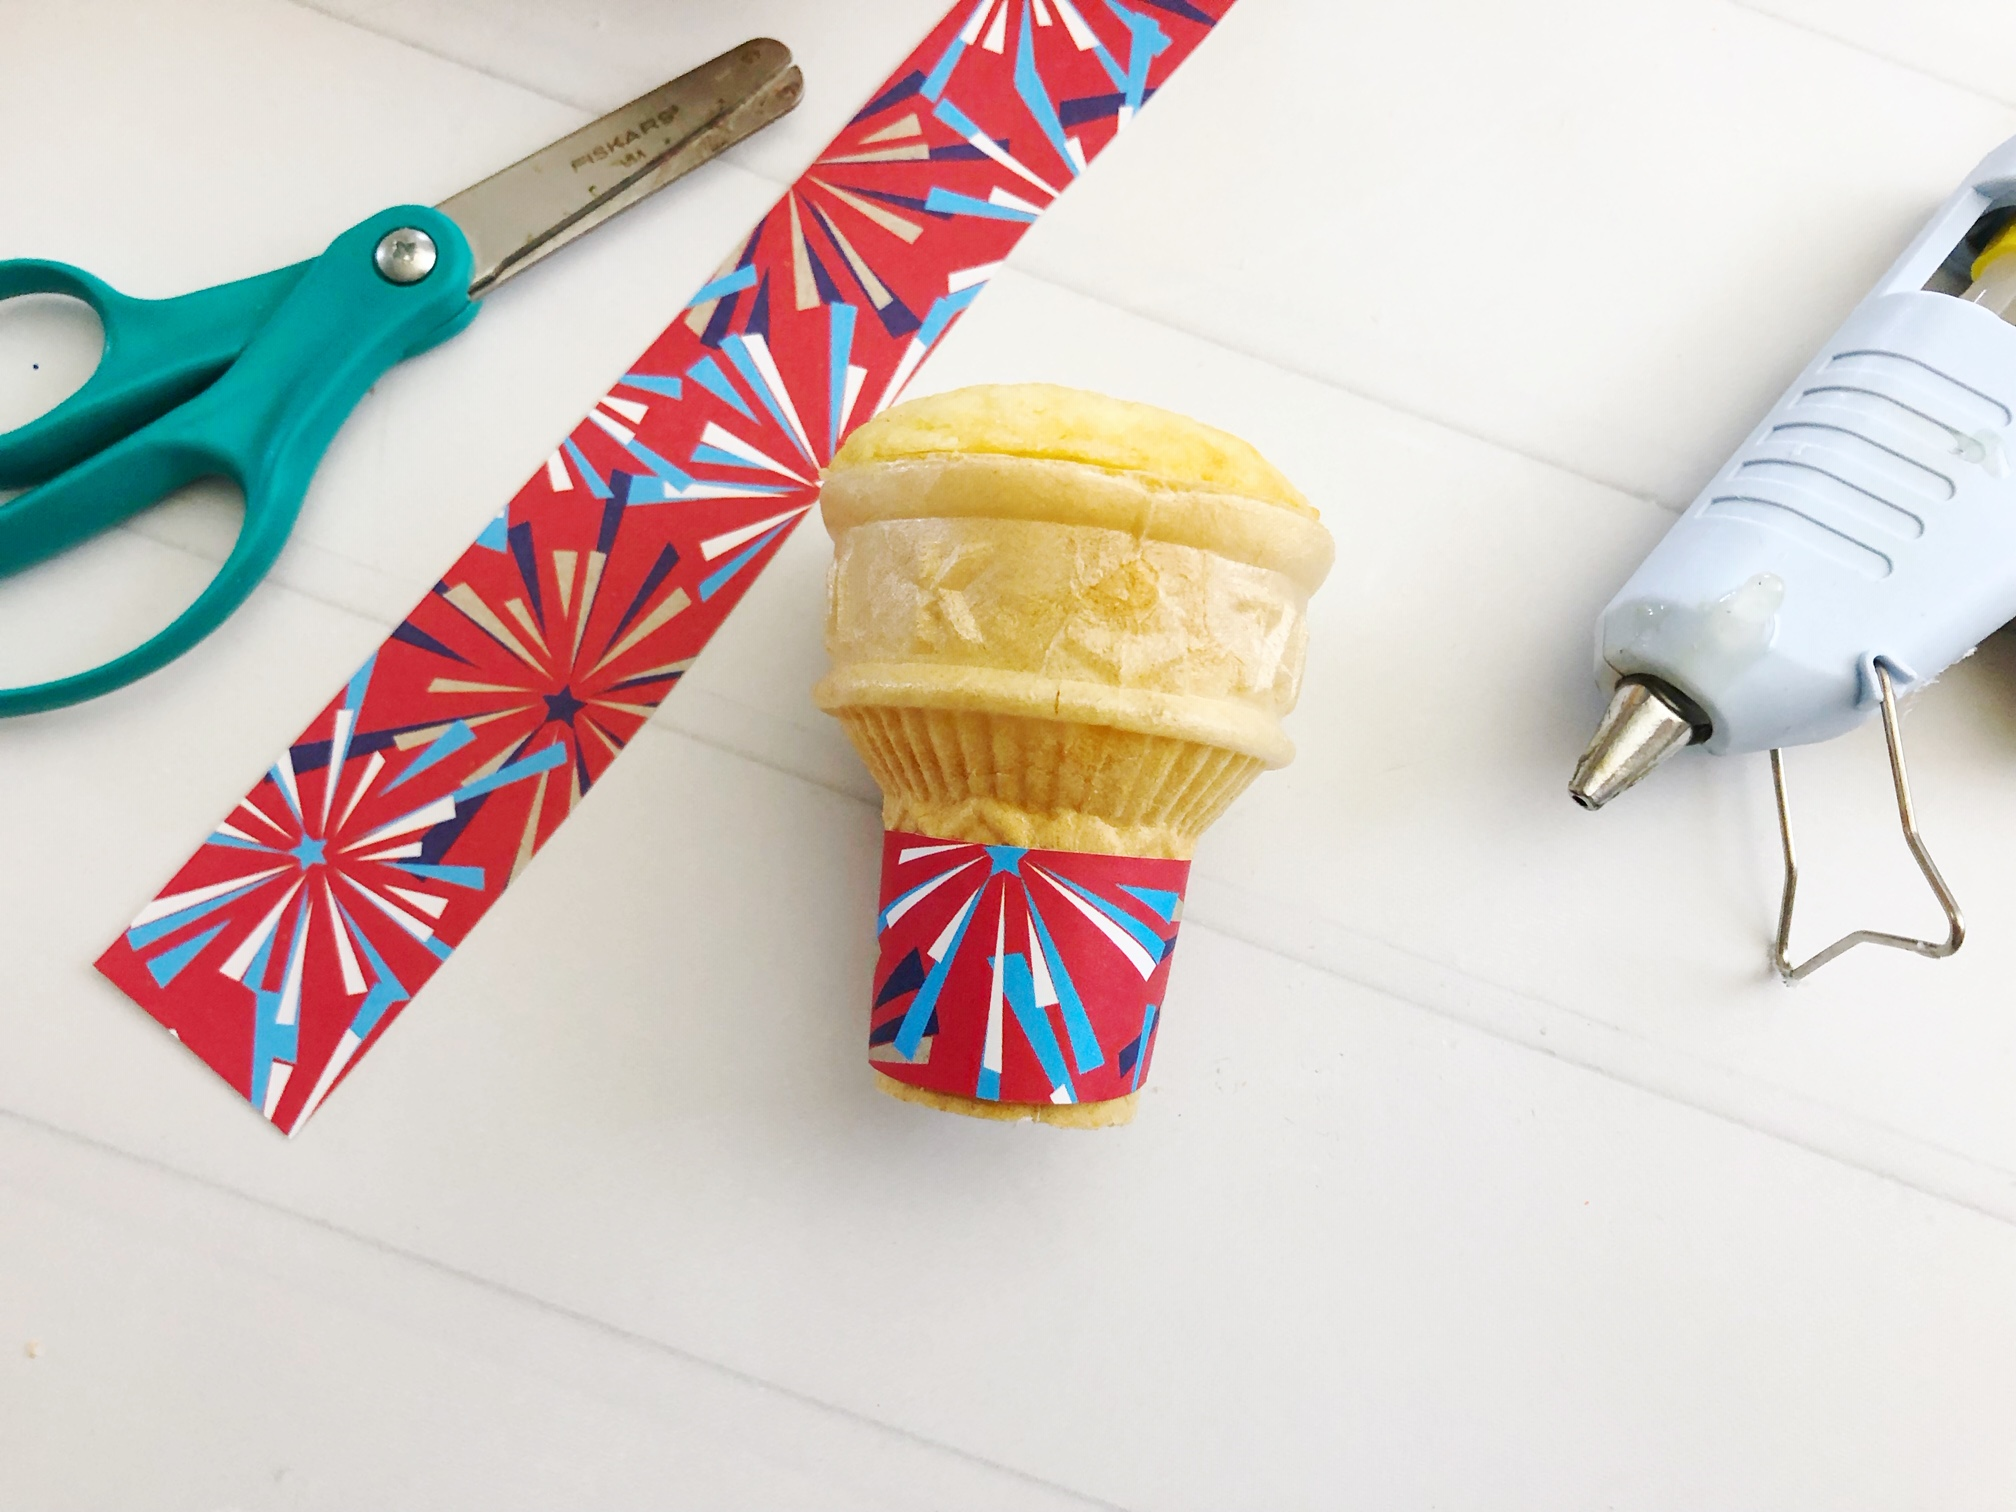 Make your Memorial Day or 4th of July celebrations extra fun with these Patriotic Ice Cream Cone Cupcakes! They're easy to make and will be a huge hit!